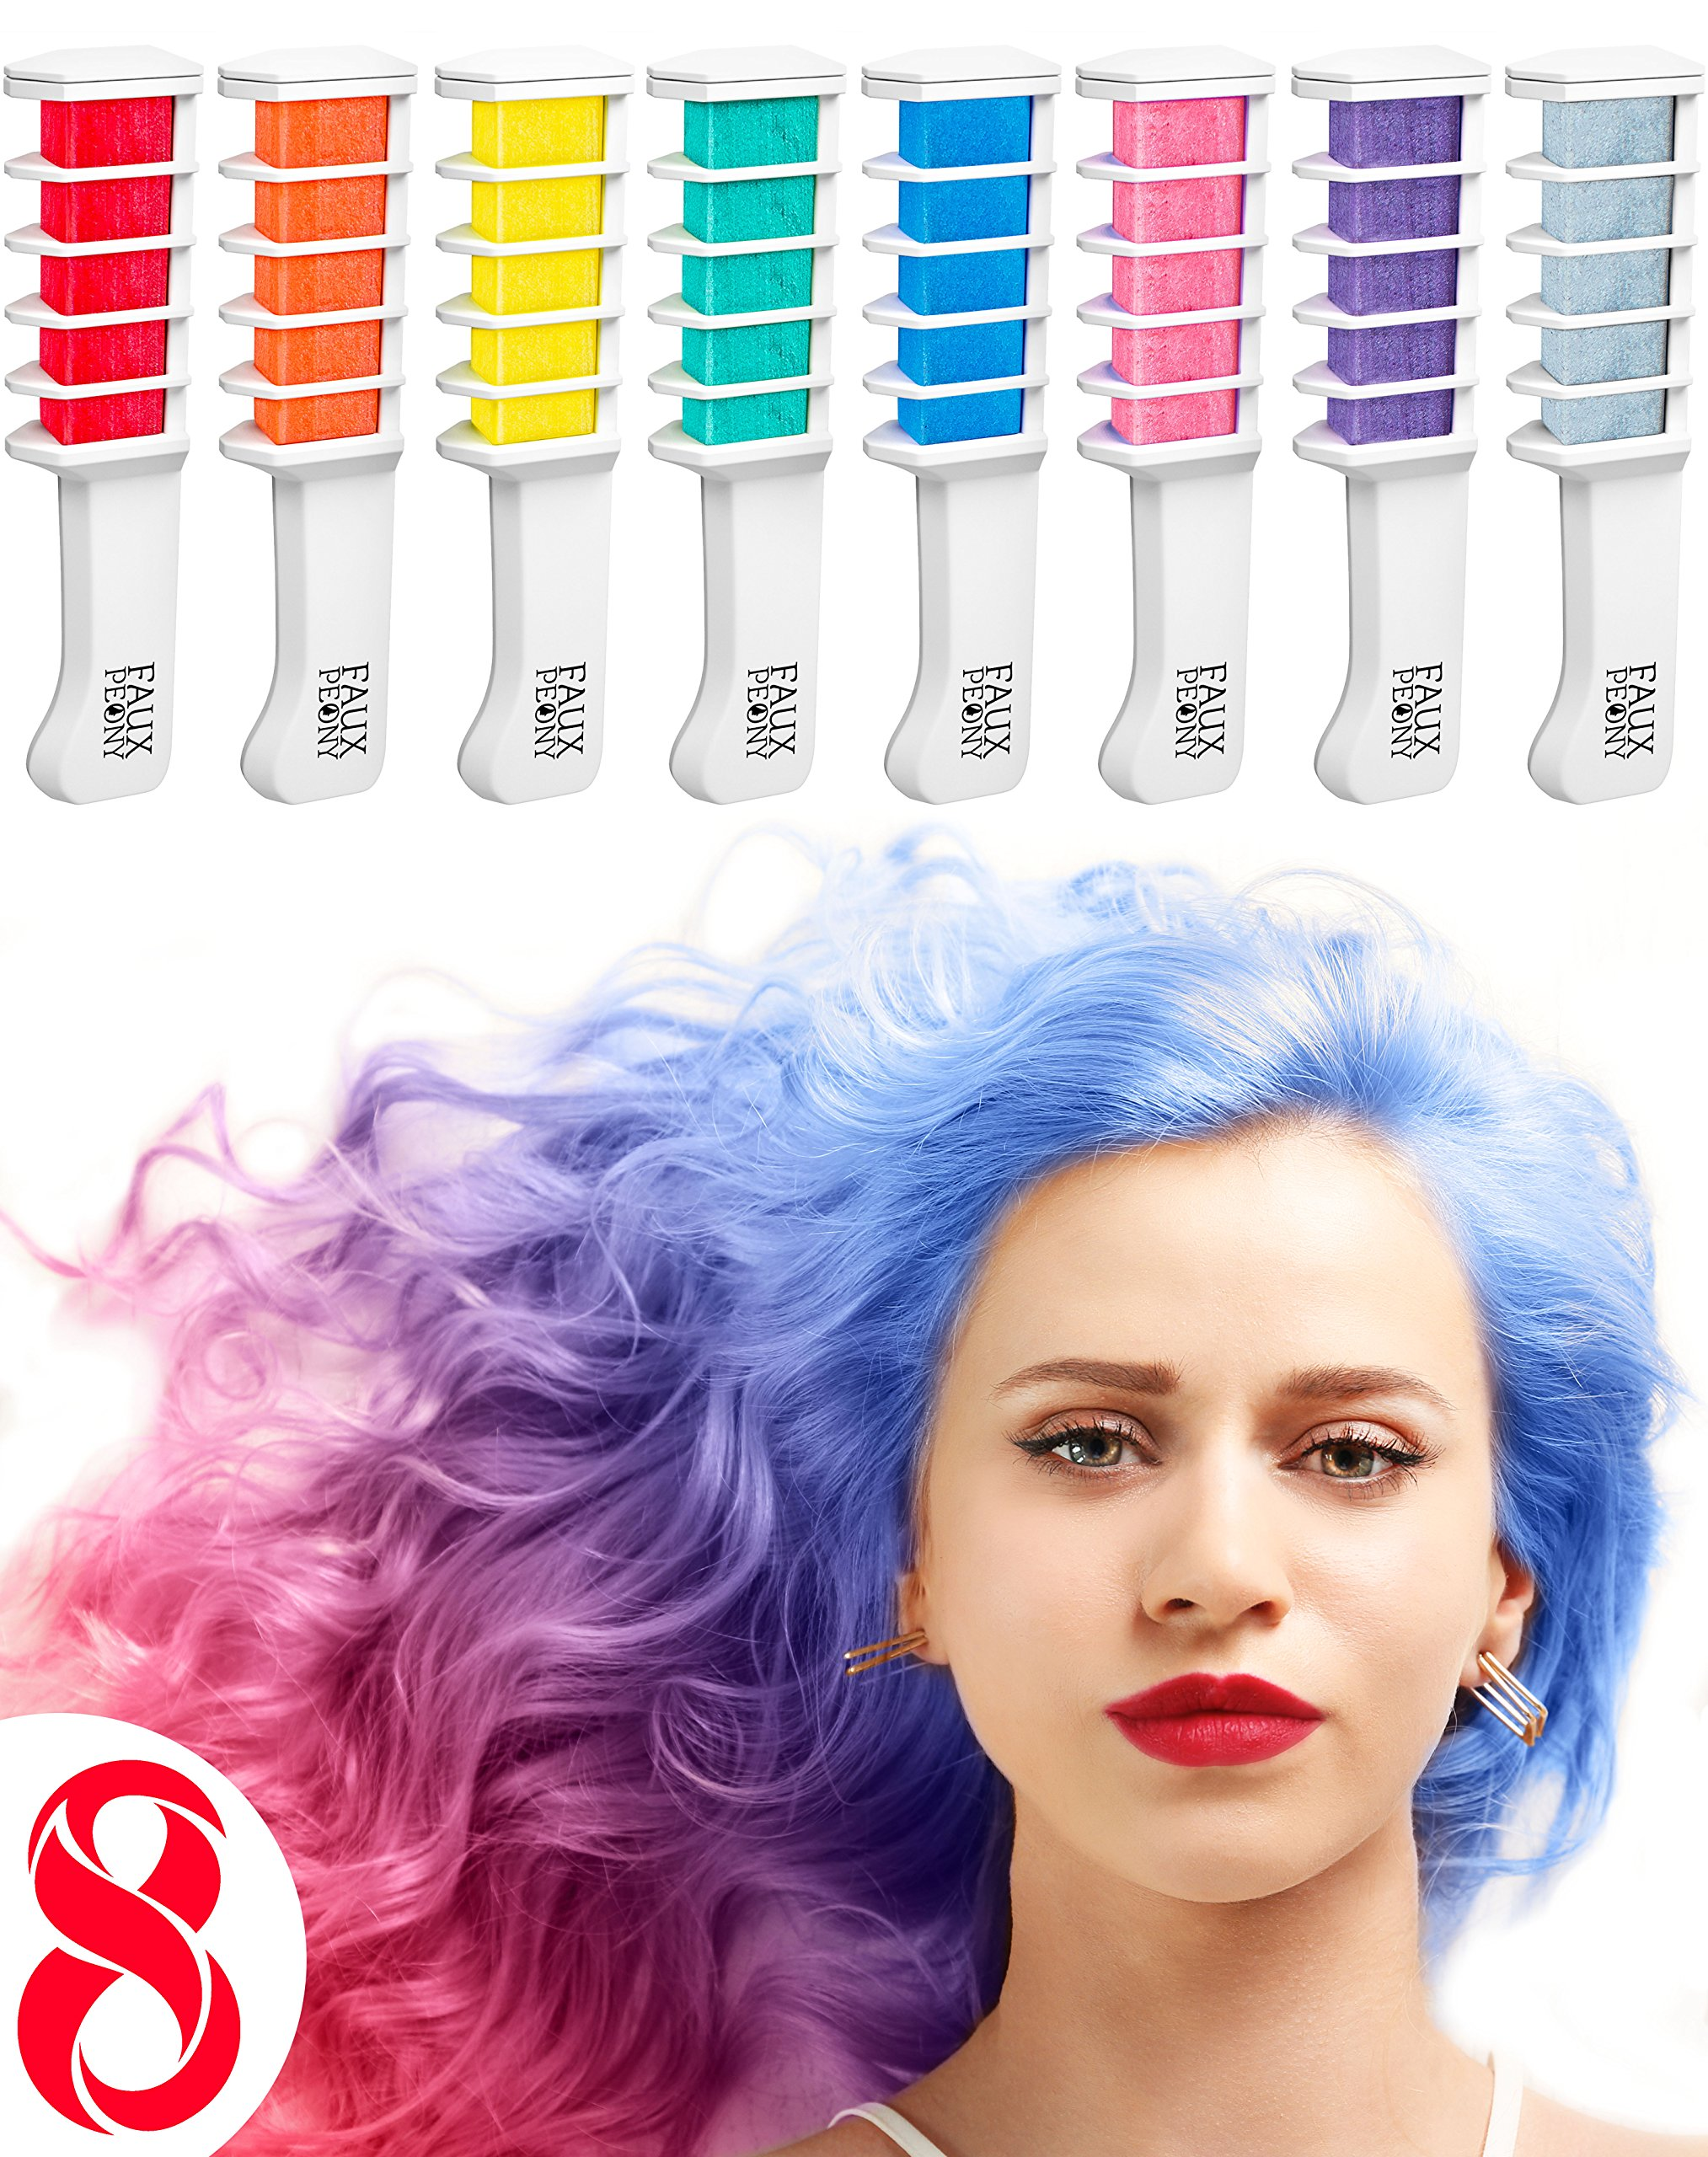 New Hair Chalk Comb Temporary Hair Dye Hair Color Brush Glitter Paint for Adults Kids & Children - Boys & Girls Perfect Gift Idea Set of 8 pcs